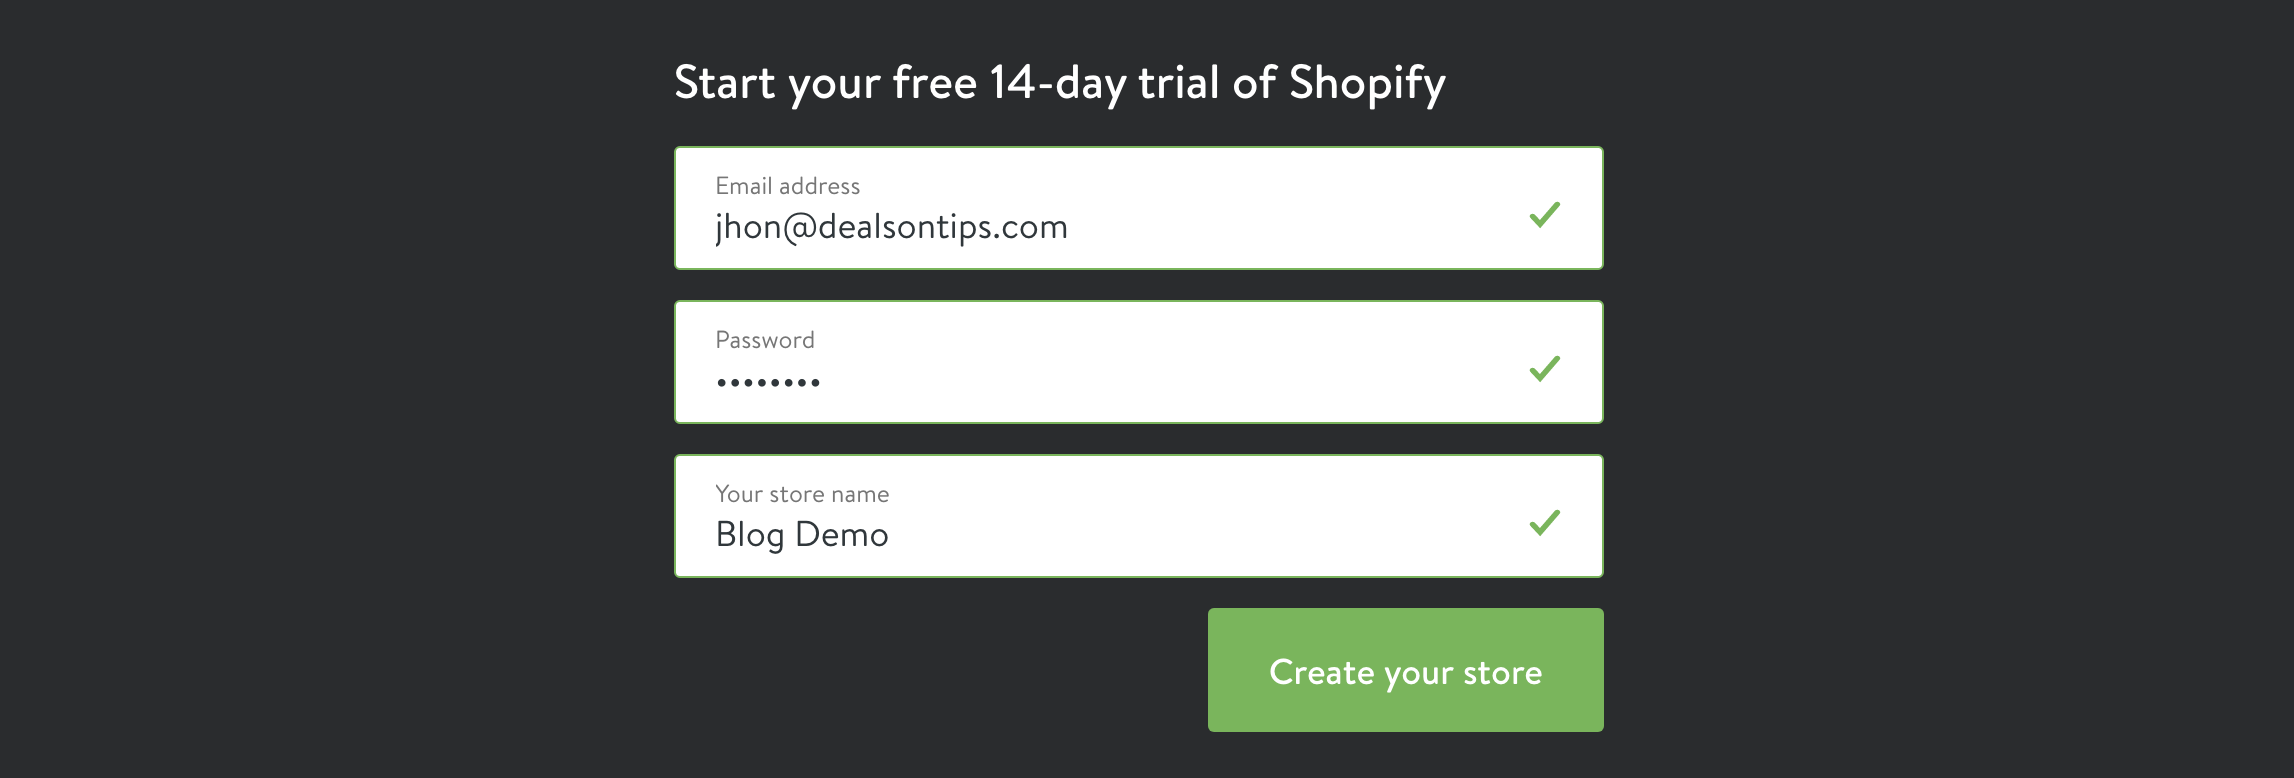 Shopify Create store two